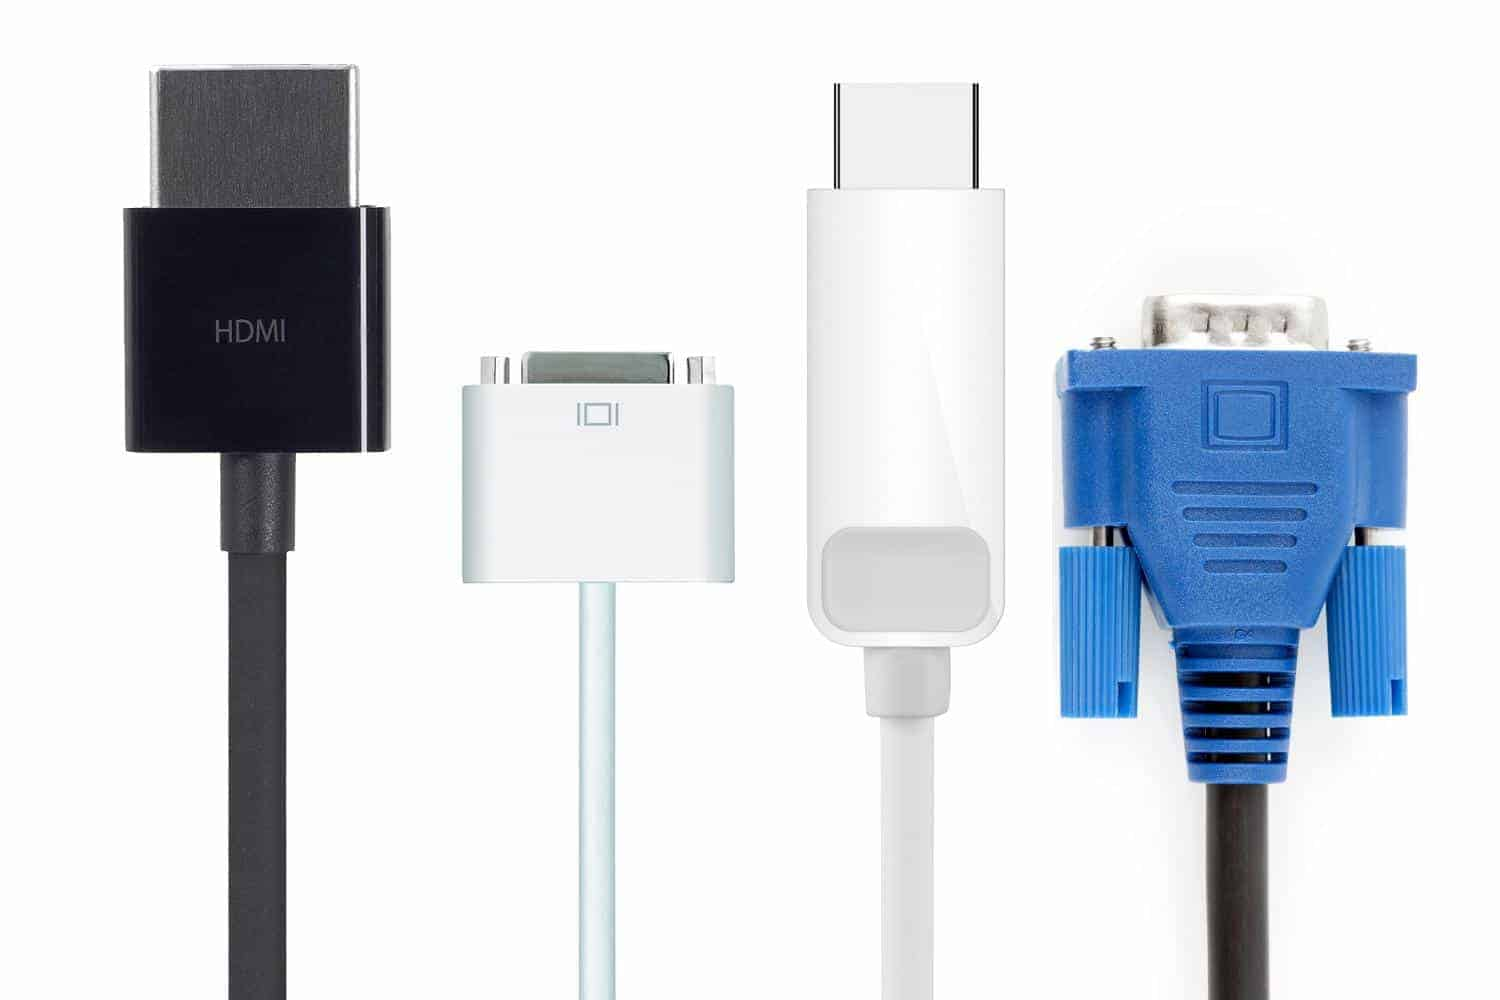 displayport vs hdmi vs dvi vs vga